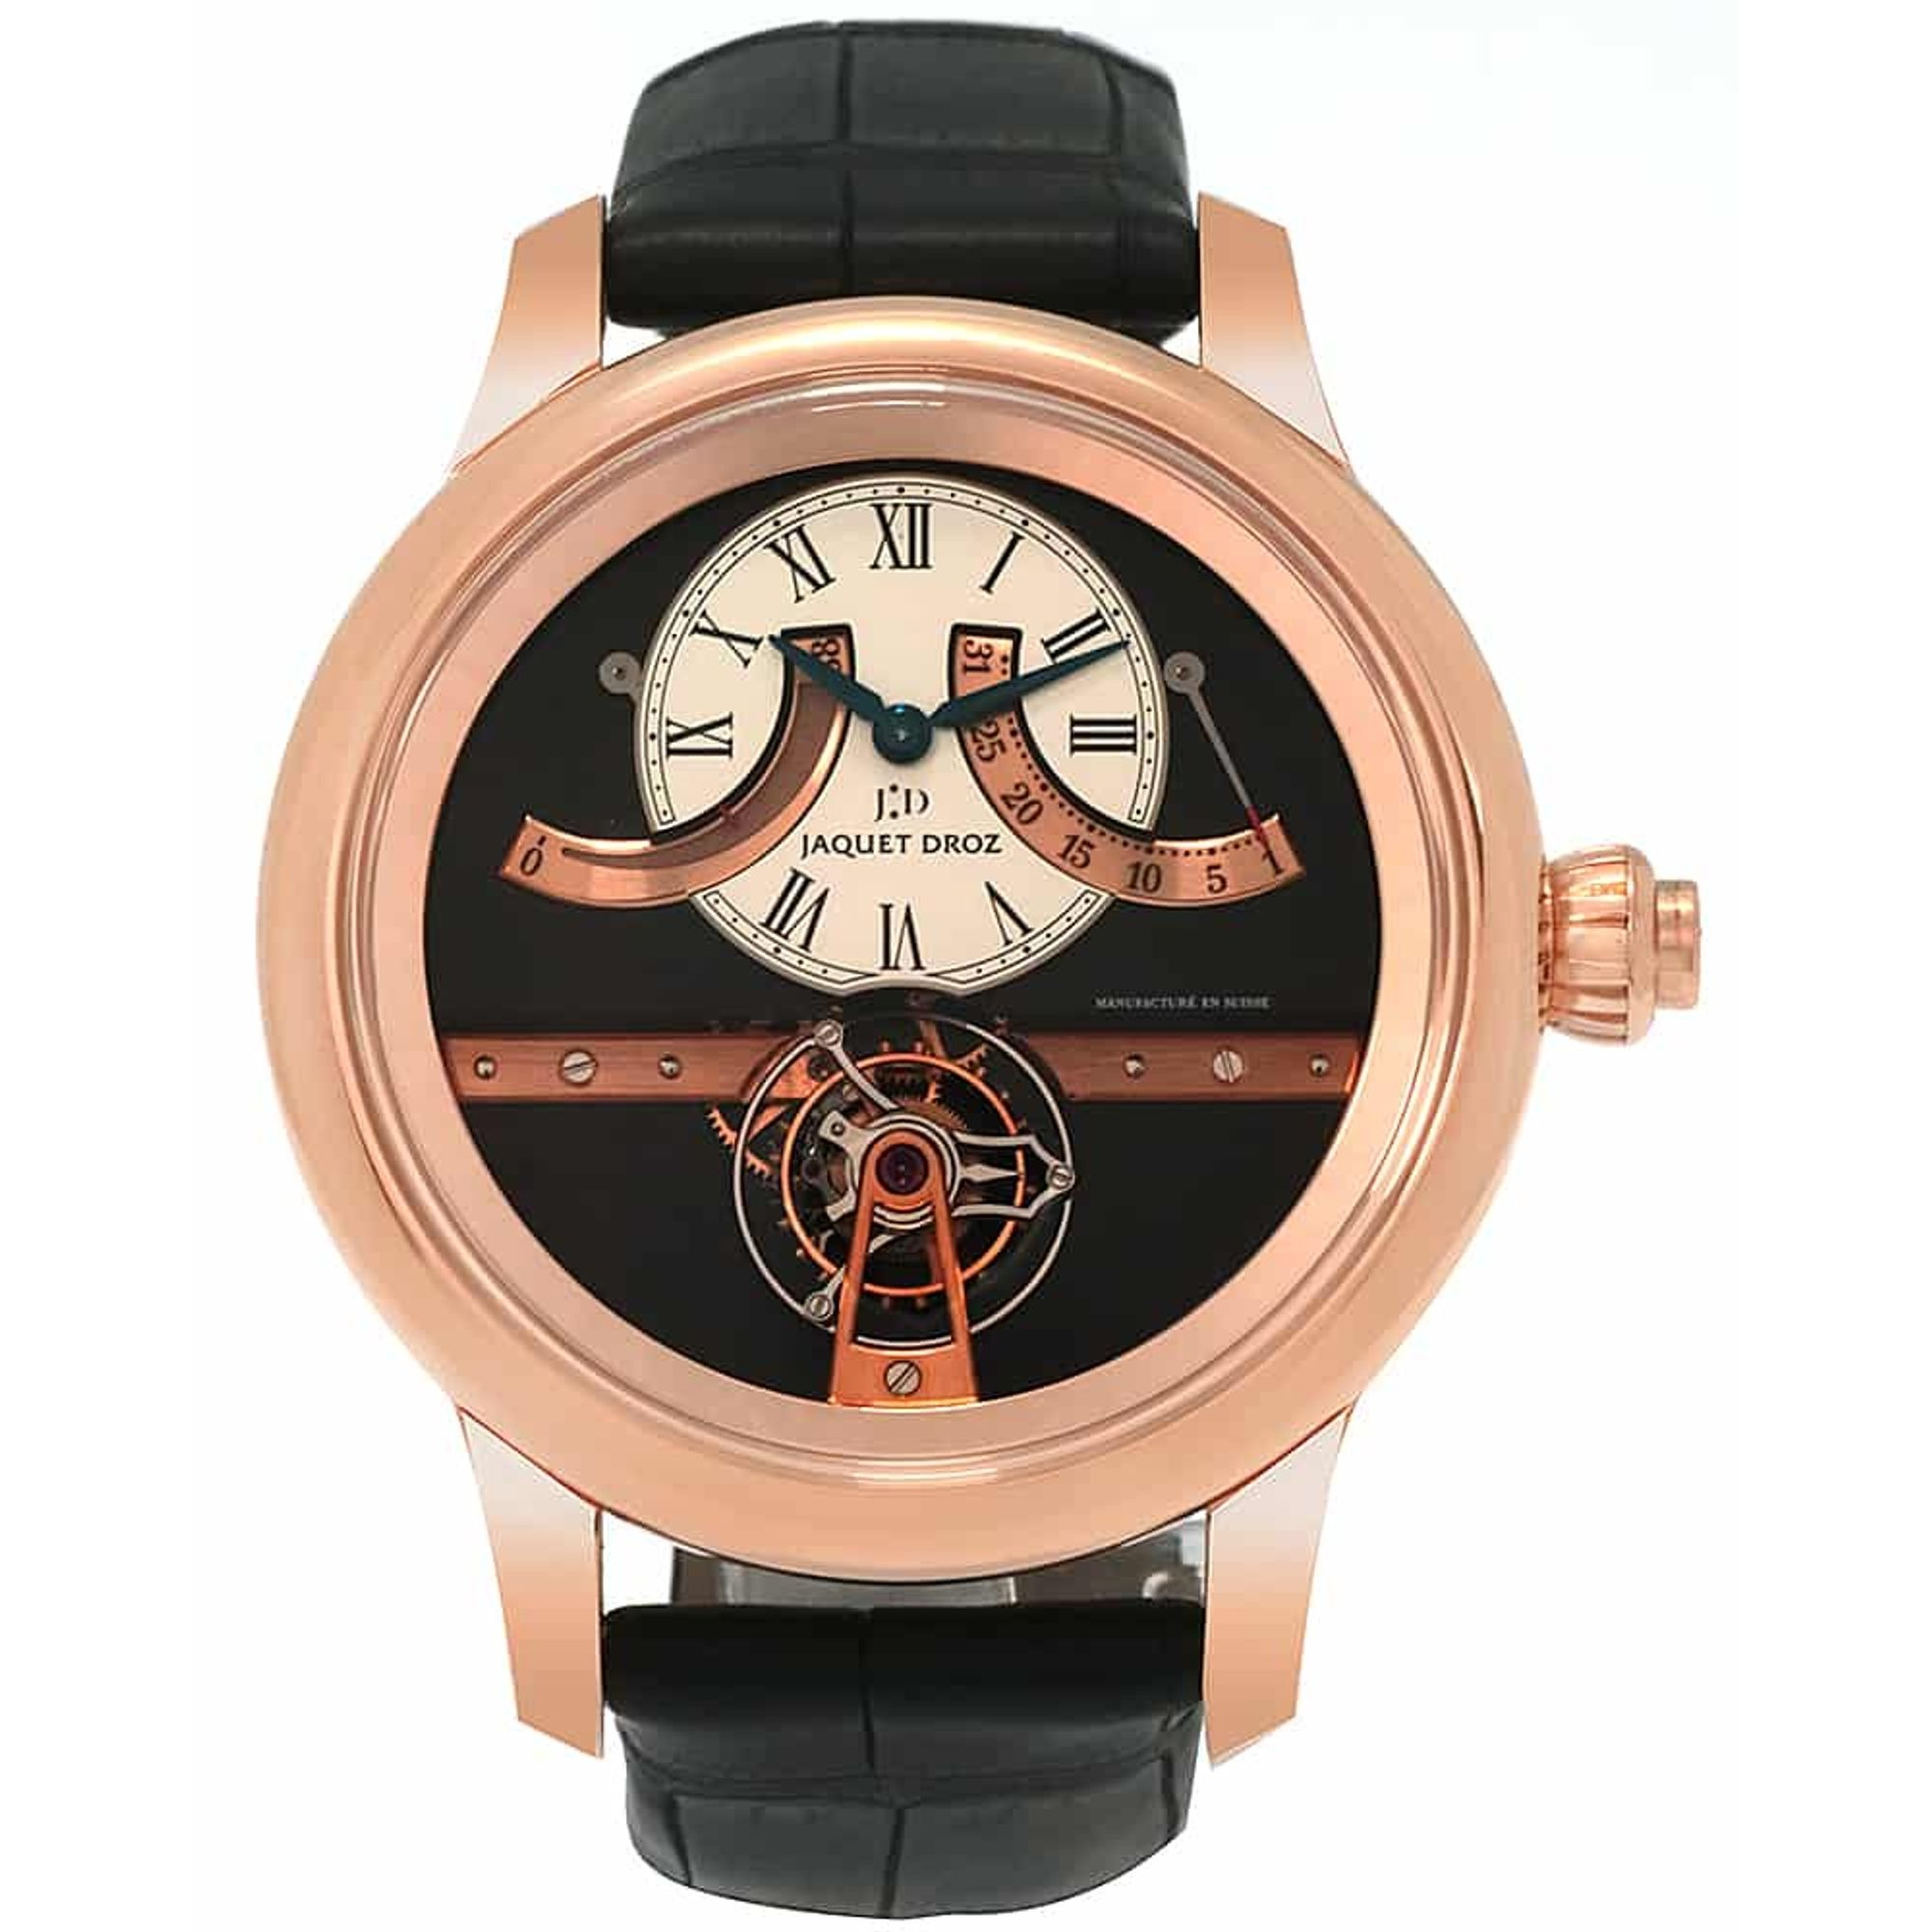 Jaquet-Droz-Tourbillon-Retrograde-Reserve-De-Marche-18k-Rose-Gold-Manual-Wind-Mens-Watch